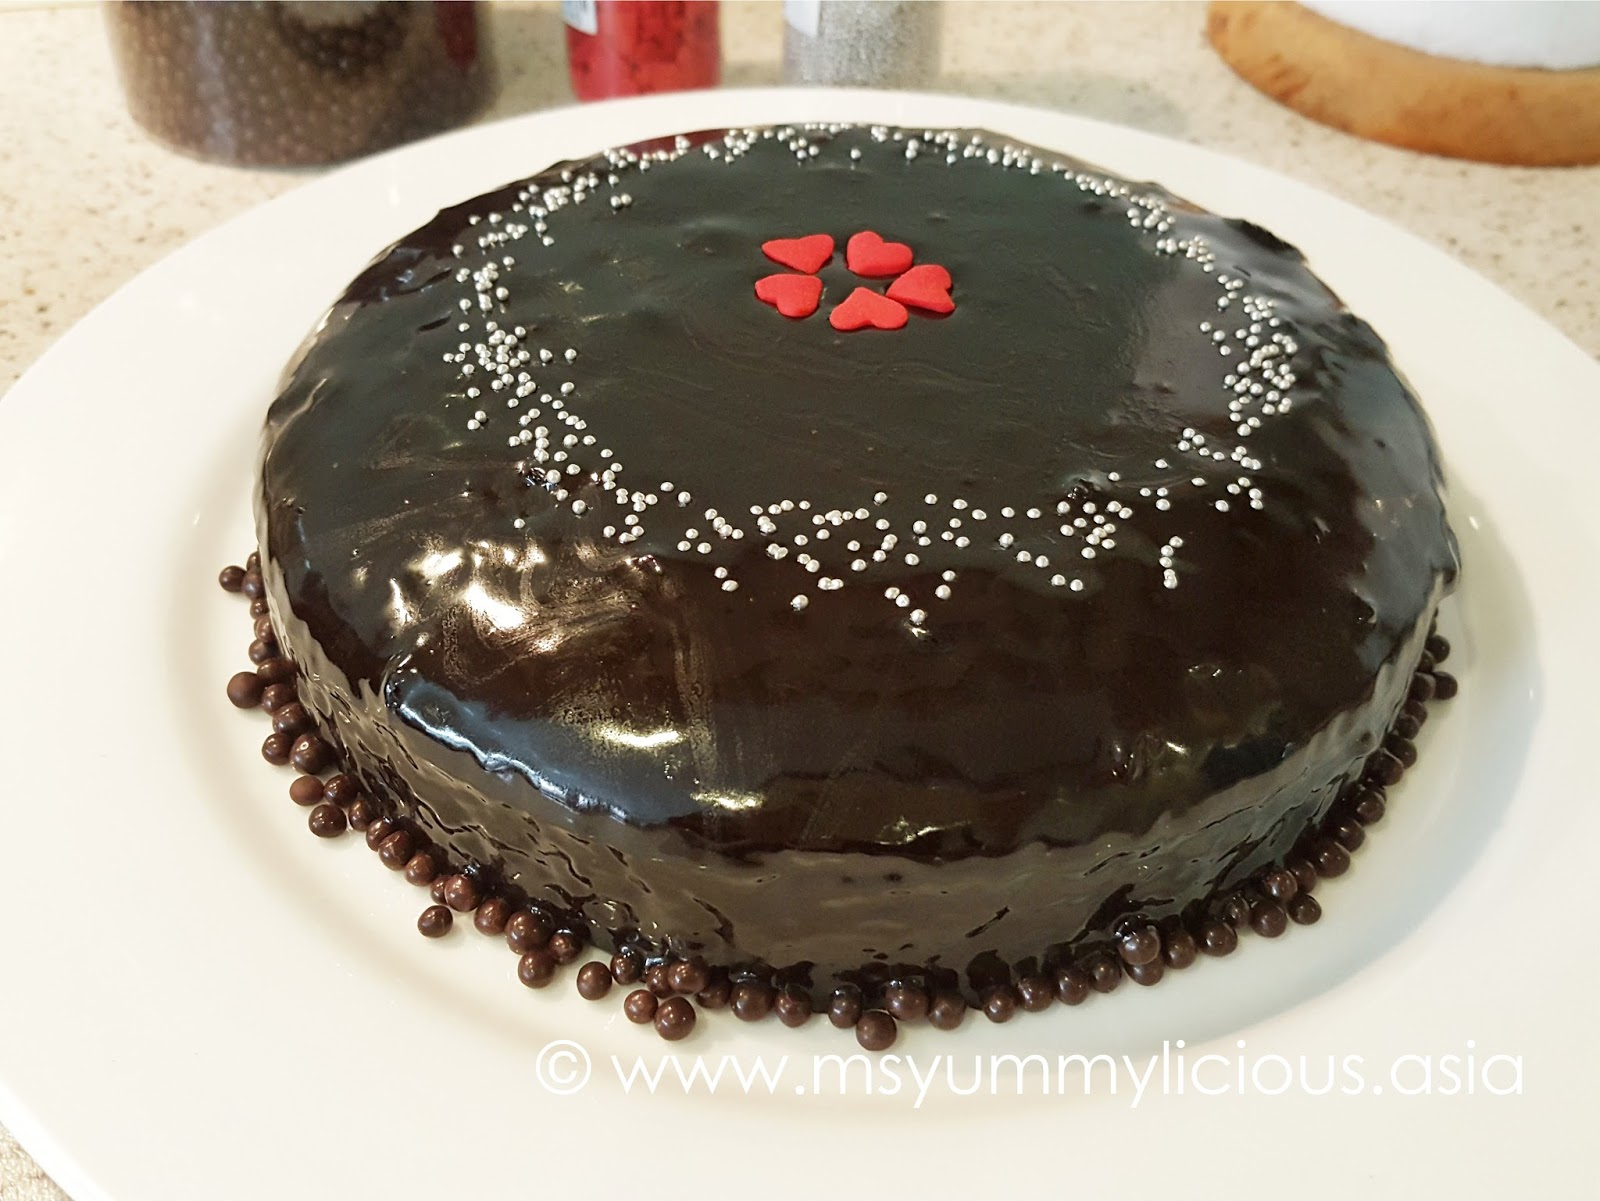 Steamed Moist Chocolate Cake For Our Prince Charmings 1st Birthday